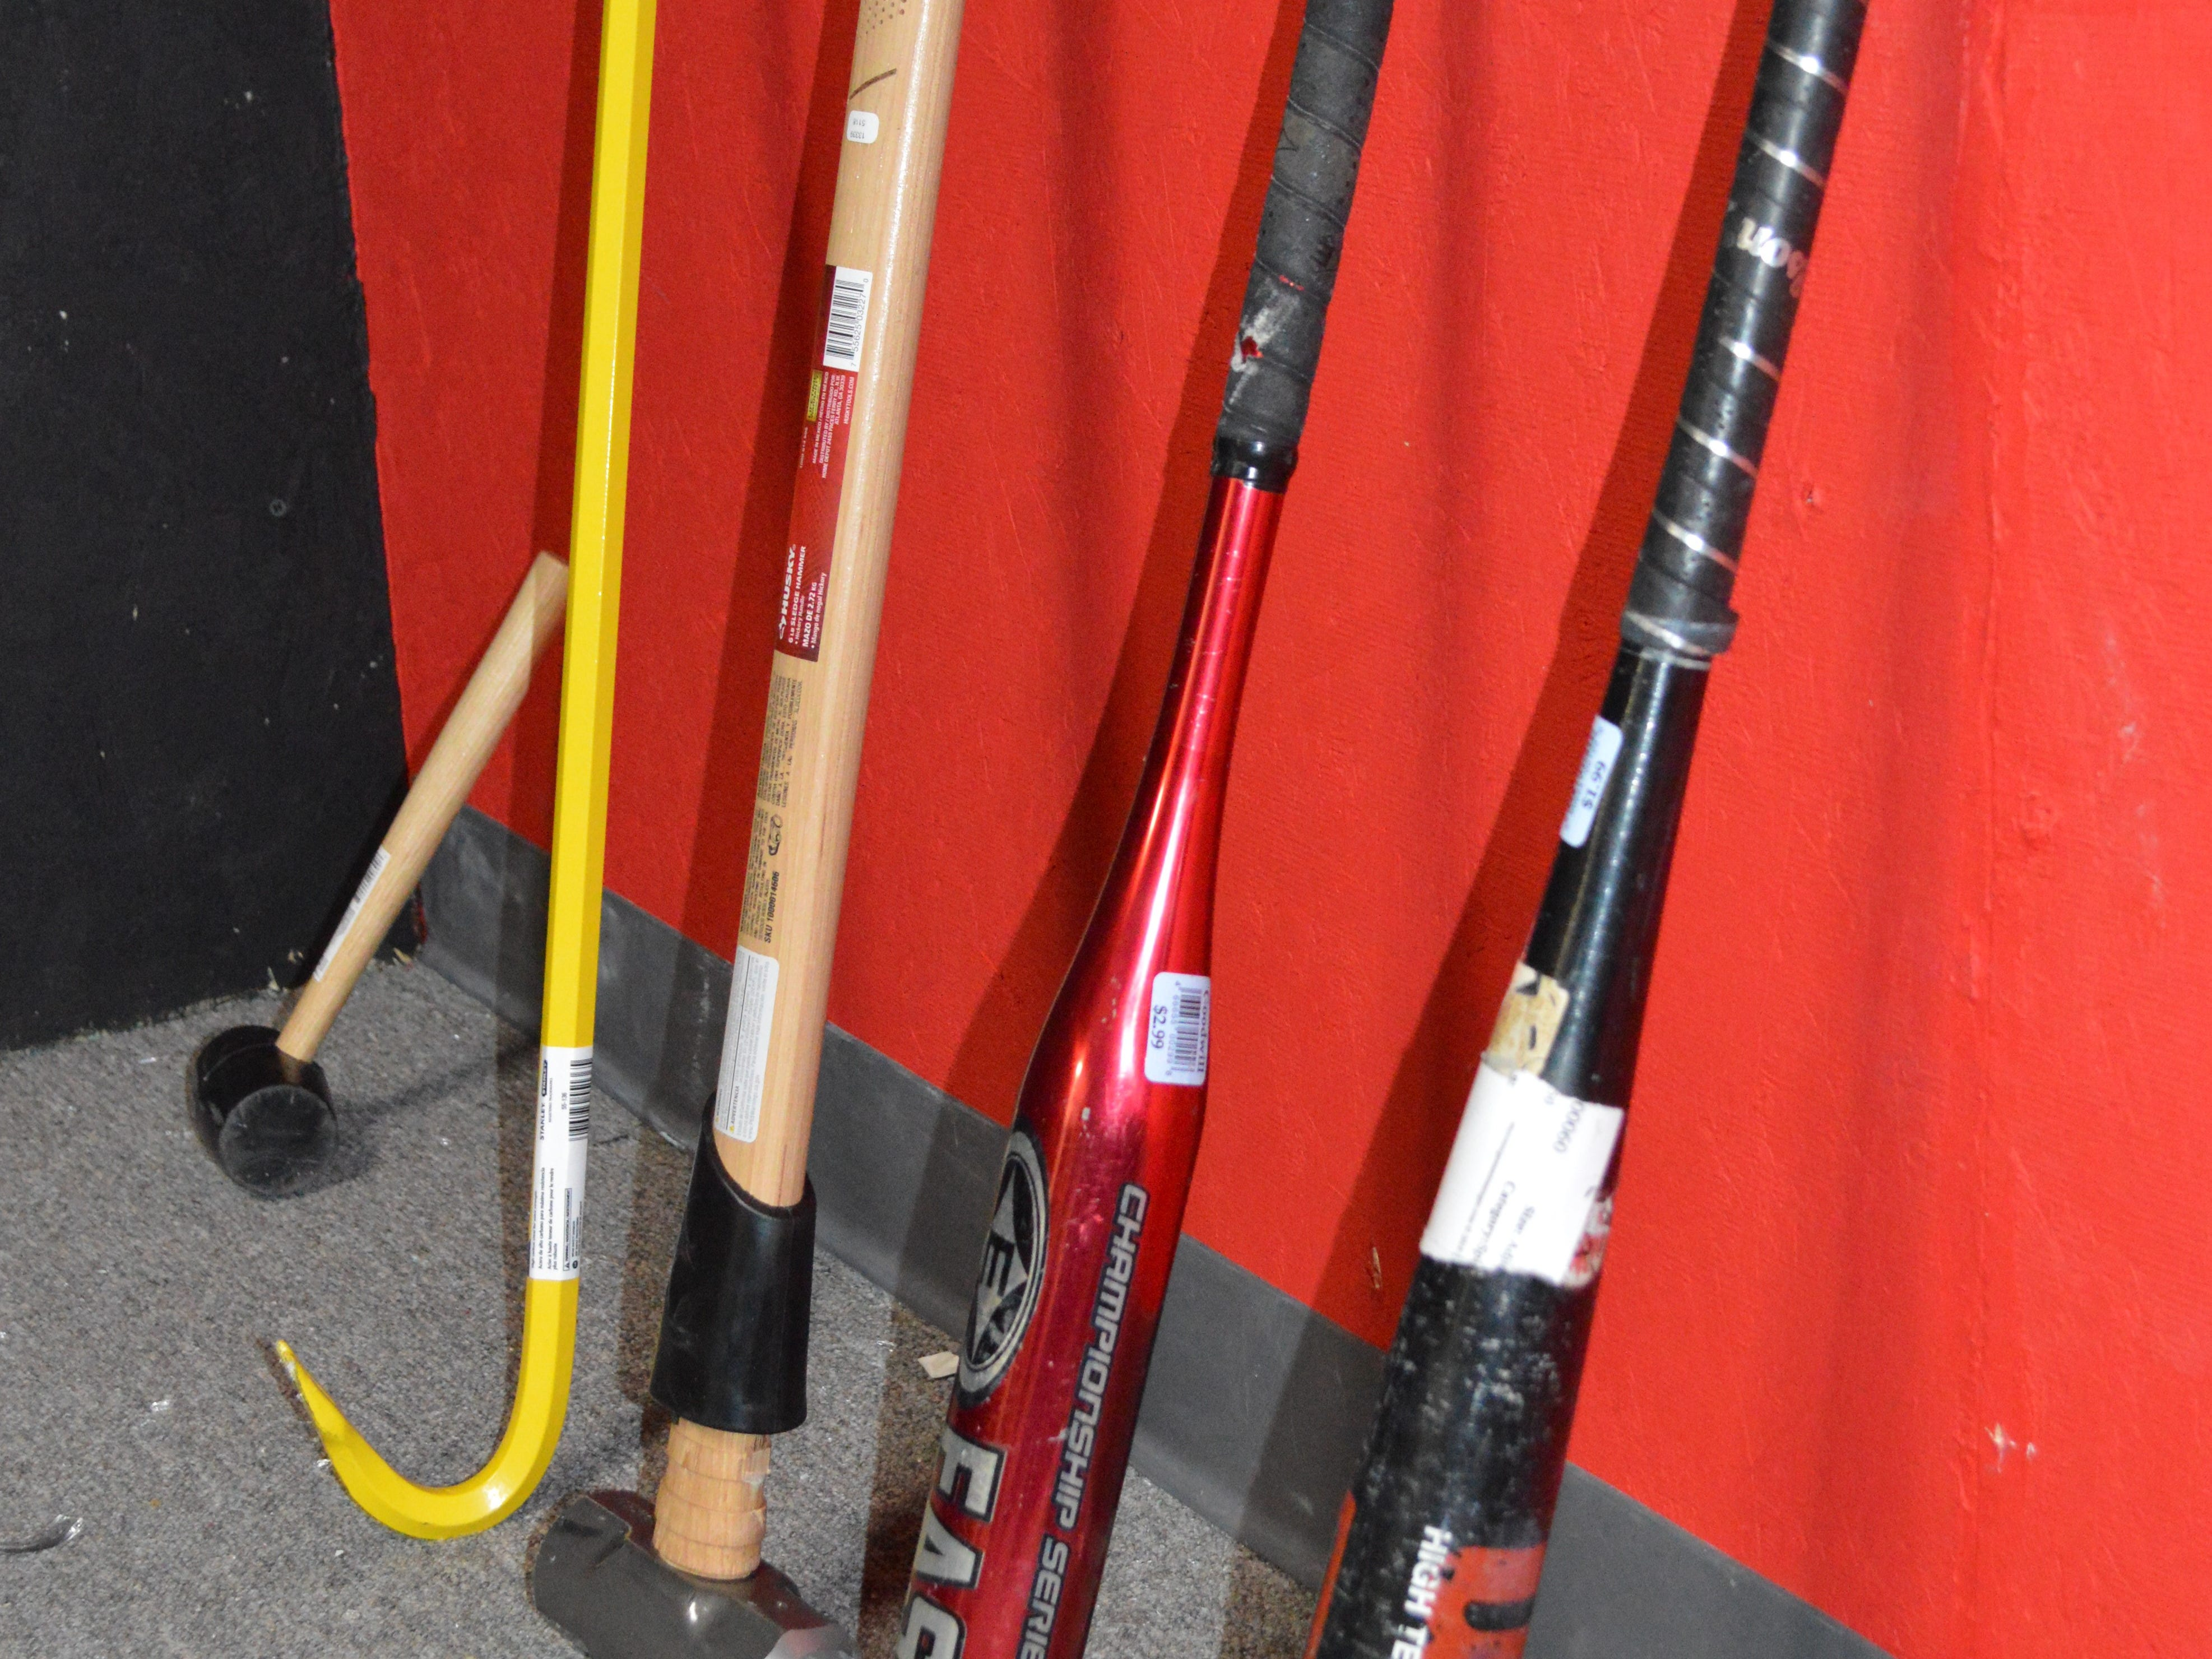 Participants can smash objects with a sledgehammer, crowbar, mallet, and baseball bats.